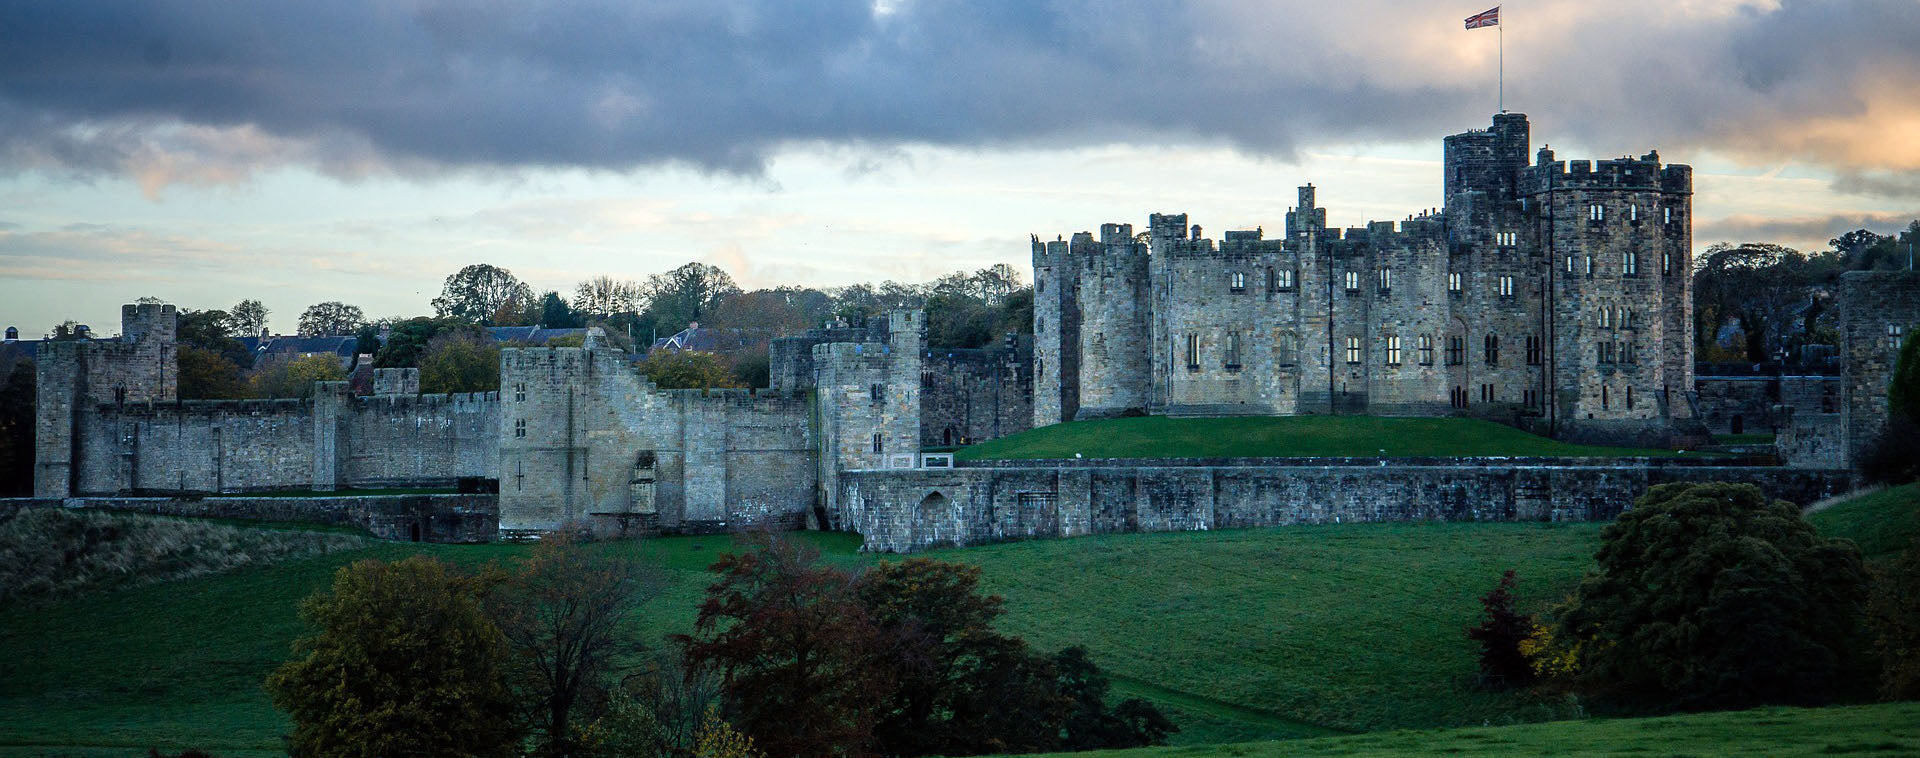 Quirky Treasure Trails - Alnwick castle - familiar to Harry Potter fans - and a pretty market village just begging to be explored with this Treasure Trail.